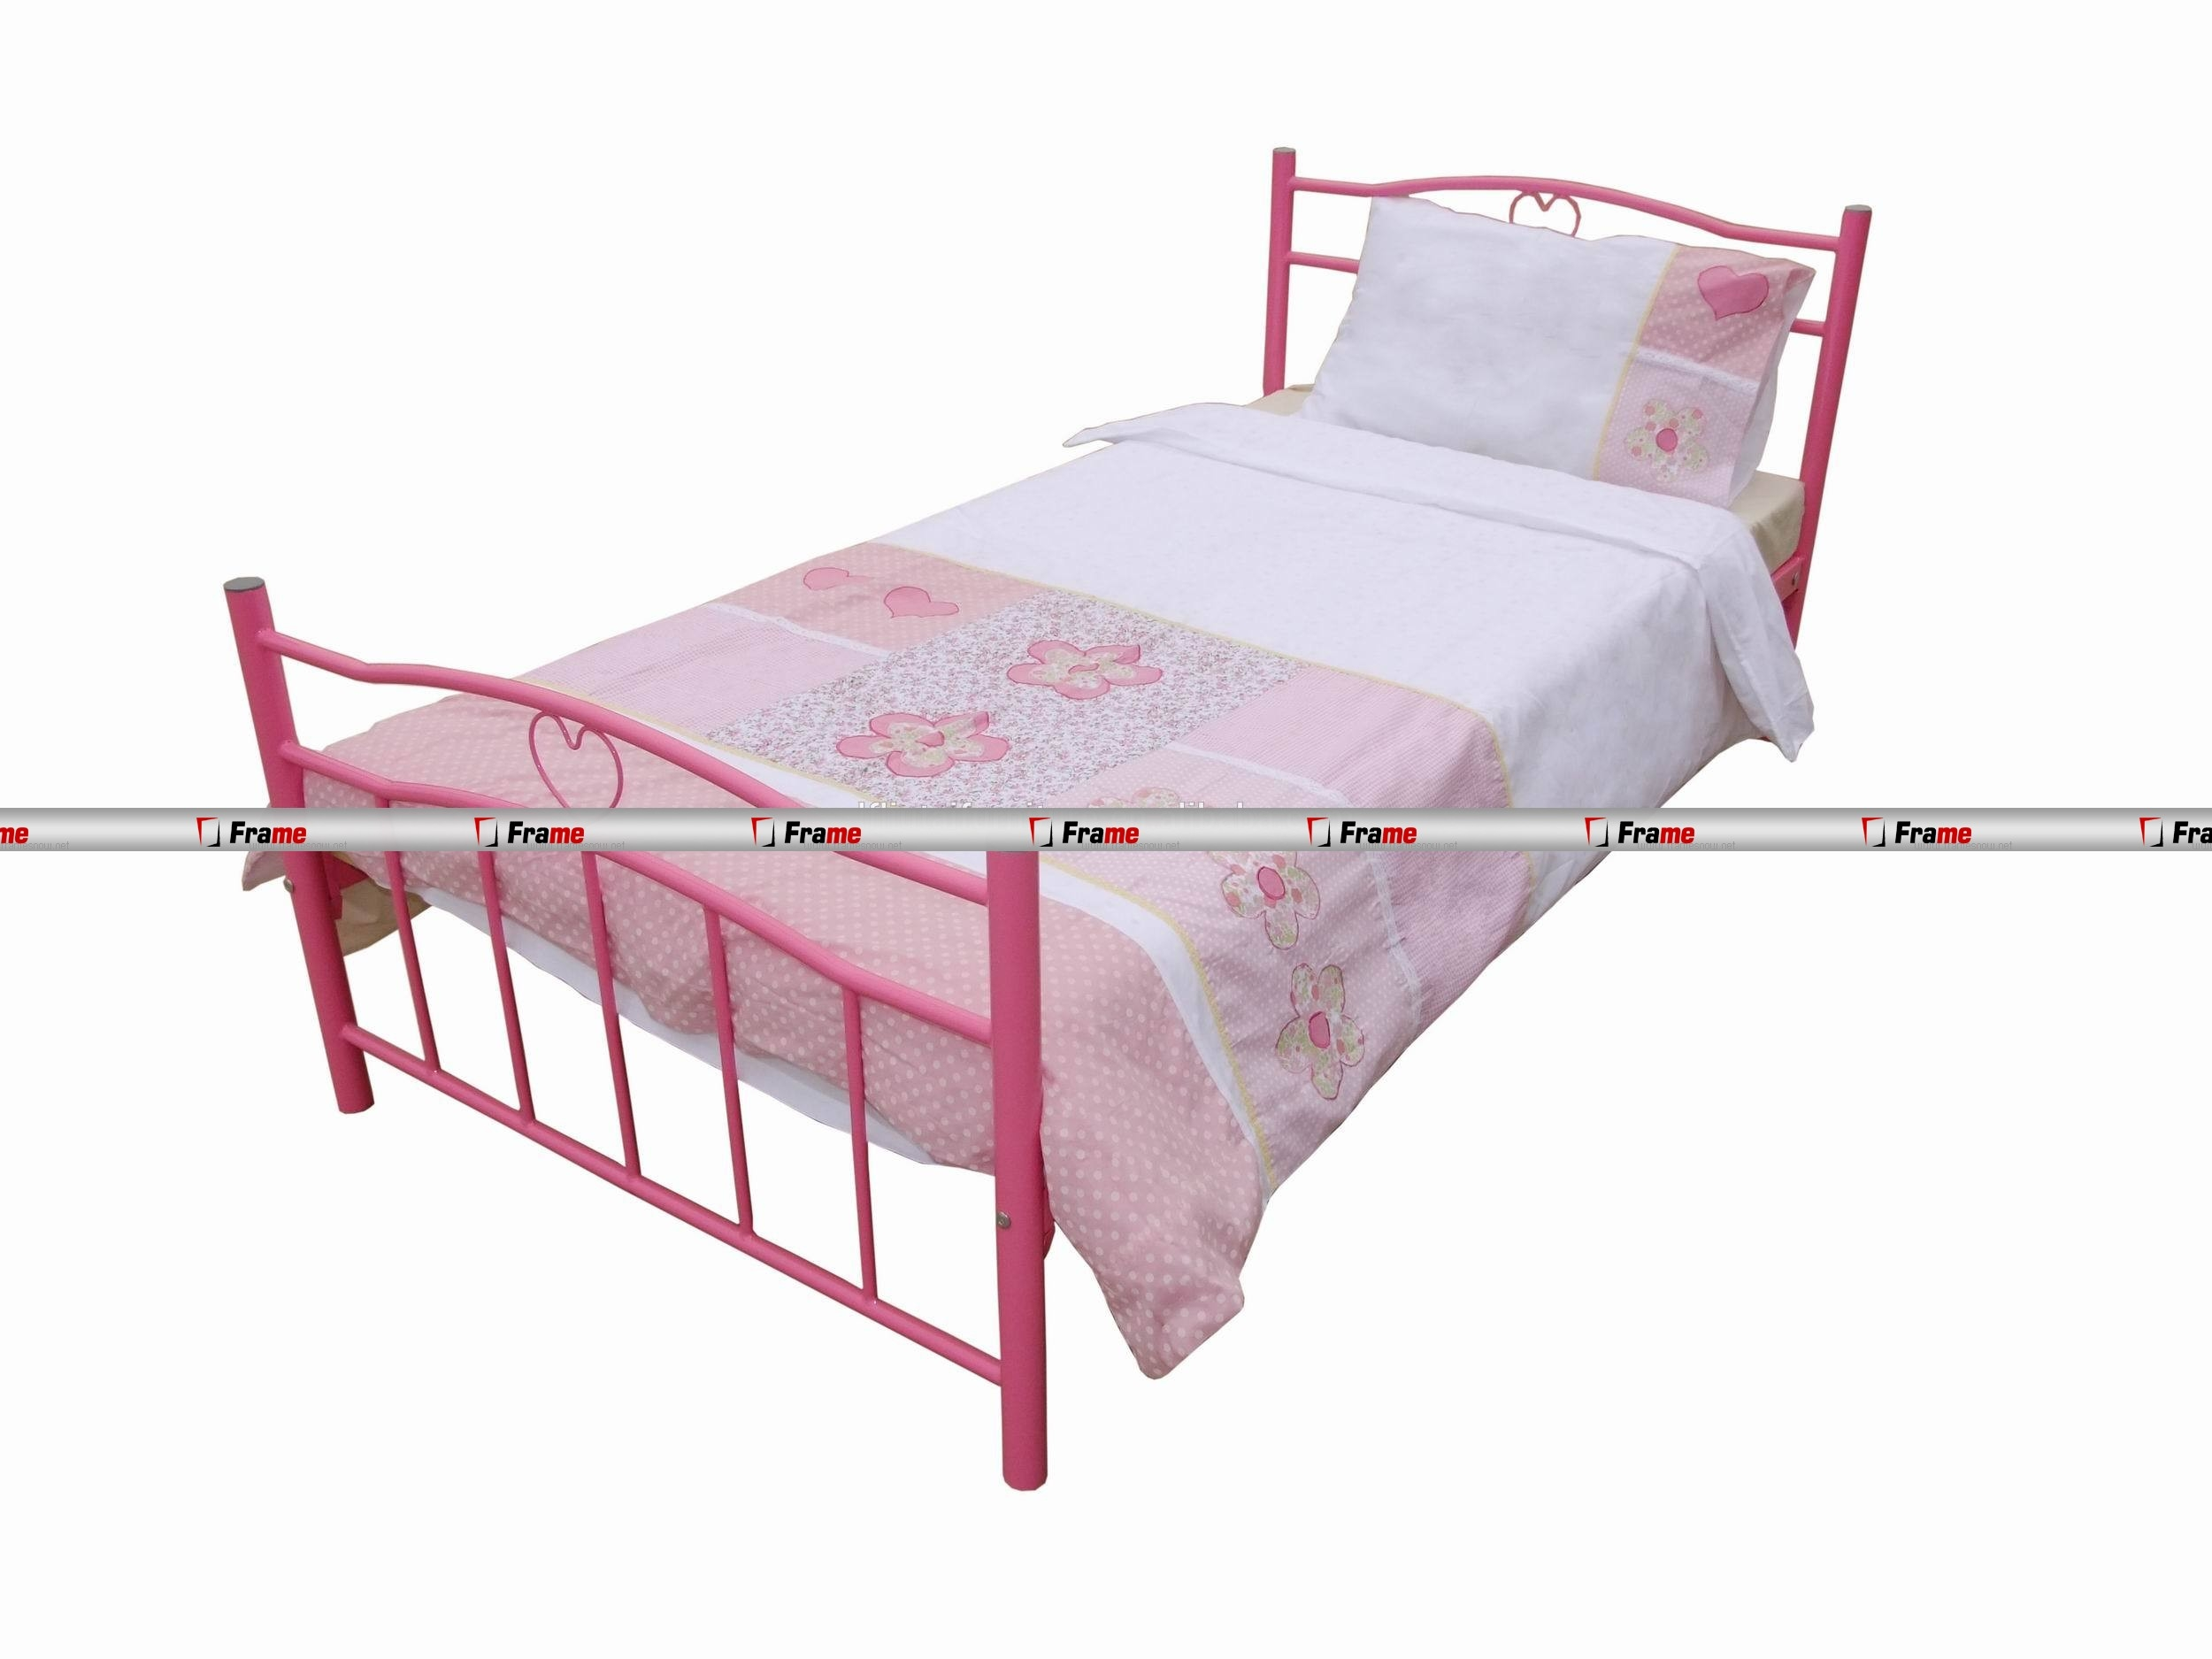 Children's Metal Single Bed Frame